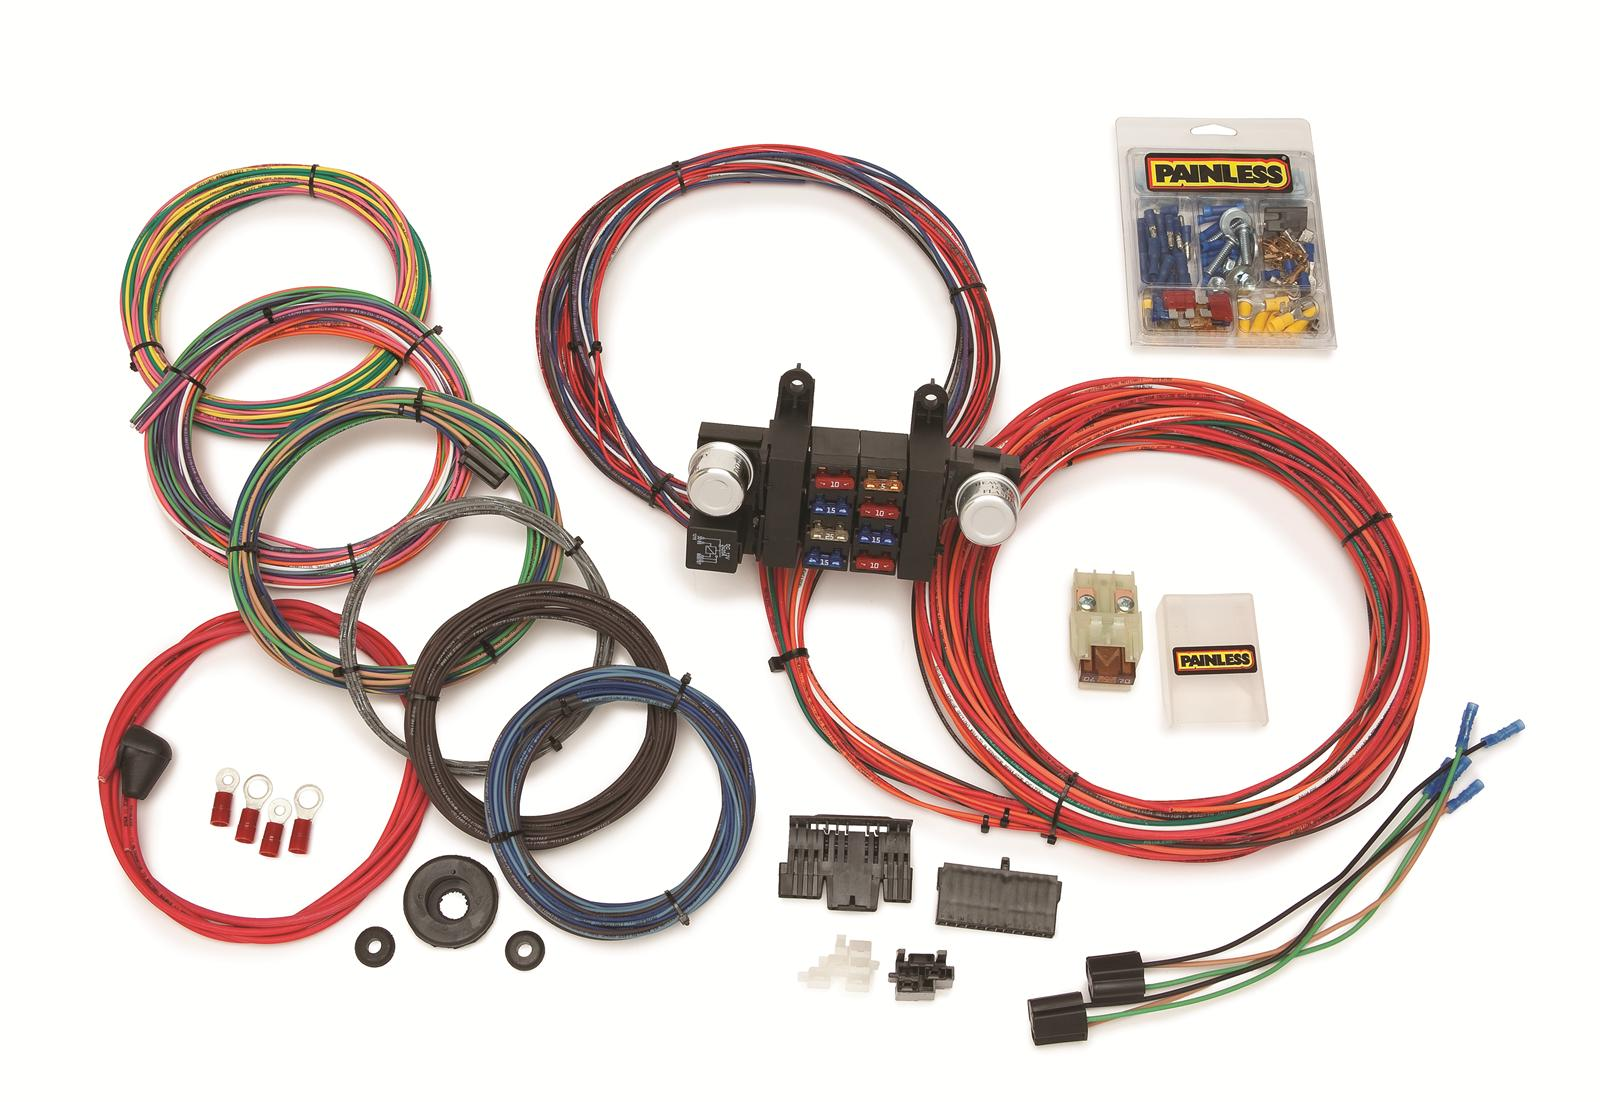 cj7 painless wiring harness painless wiring 10307 wiring harness 8-circuit front | ebay #15